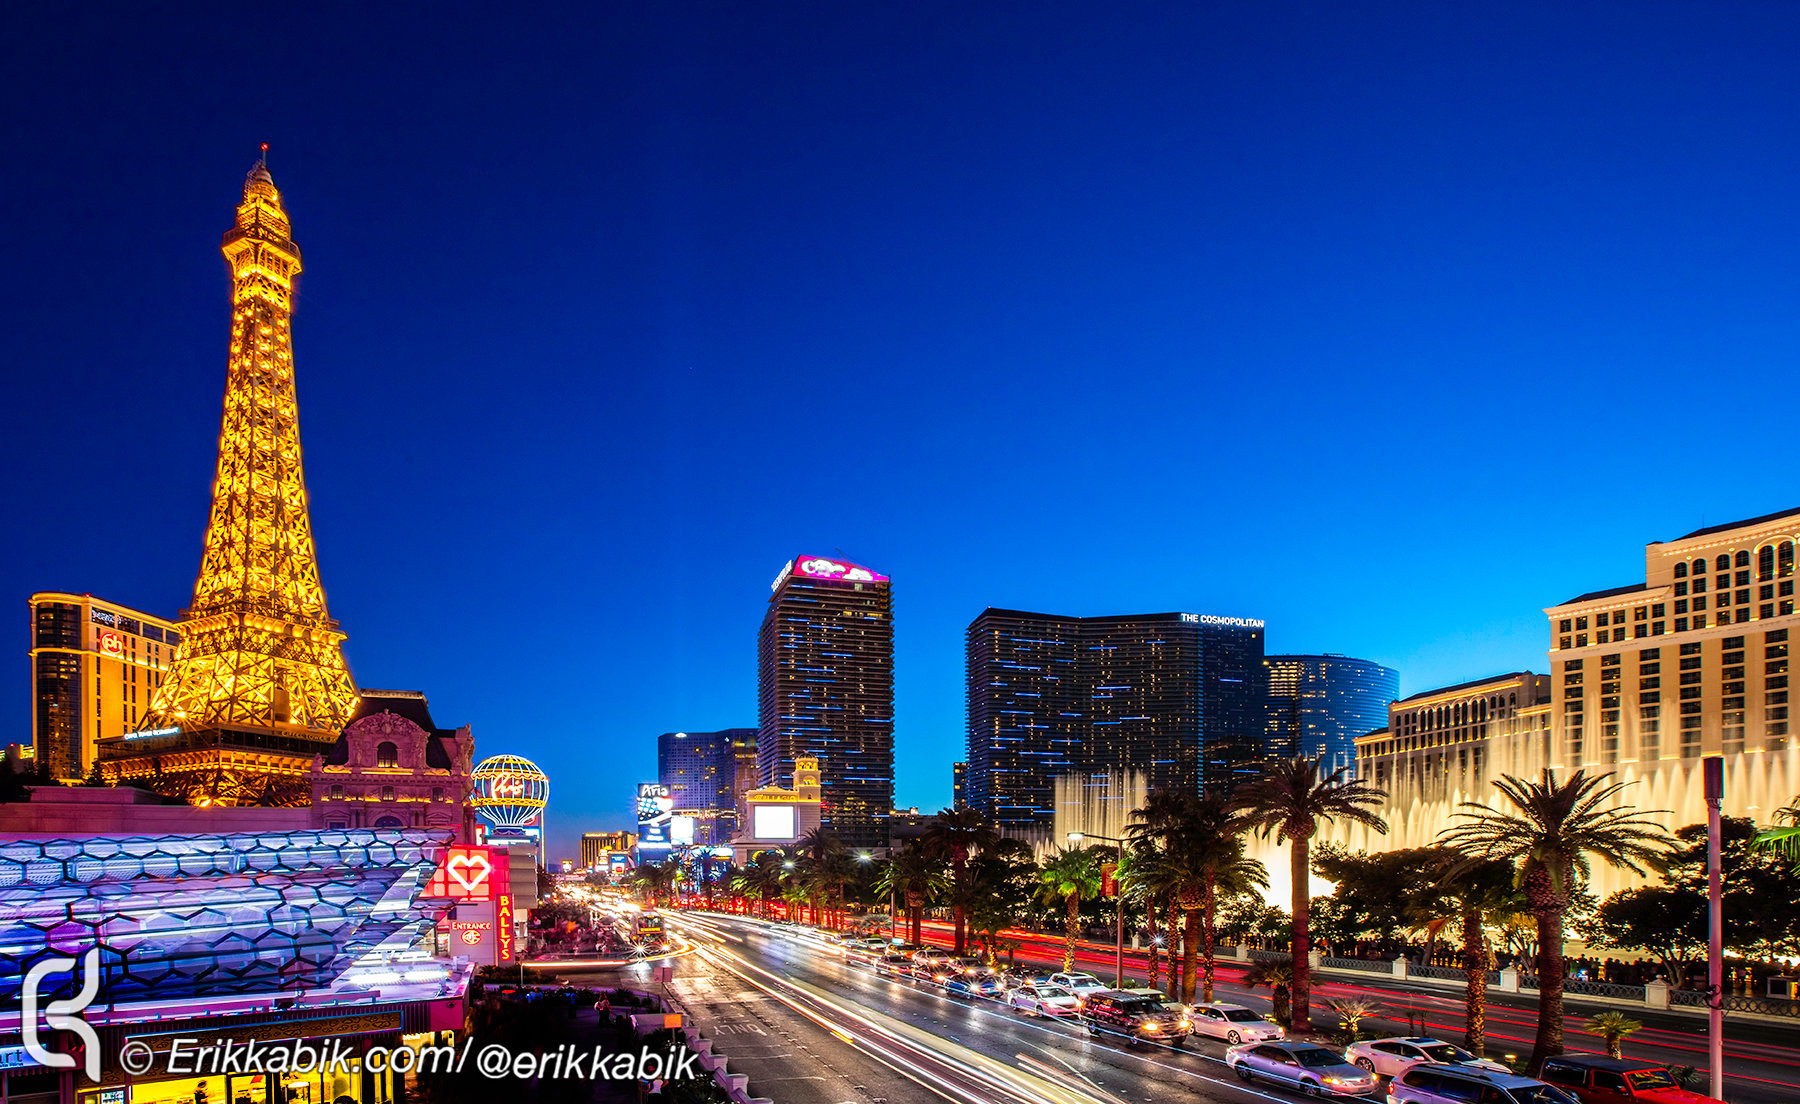 LAS_VEGAS_STRIP_11_10_16_KABIK copy.jpg